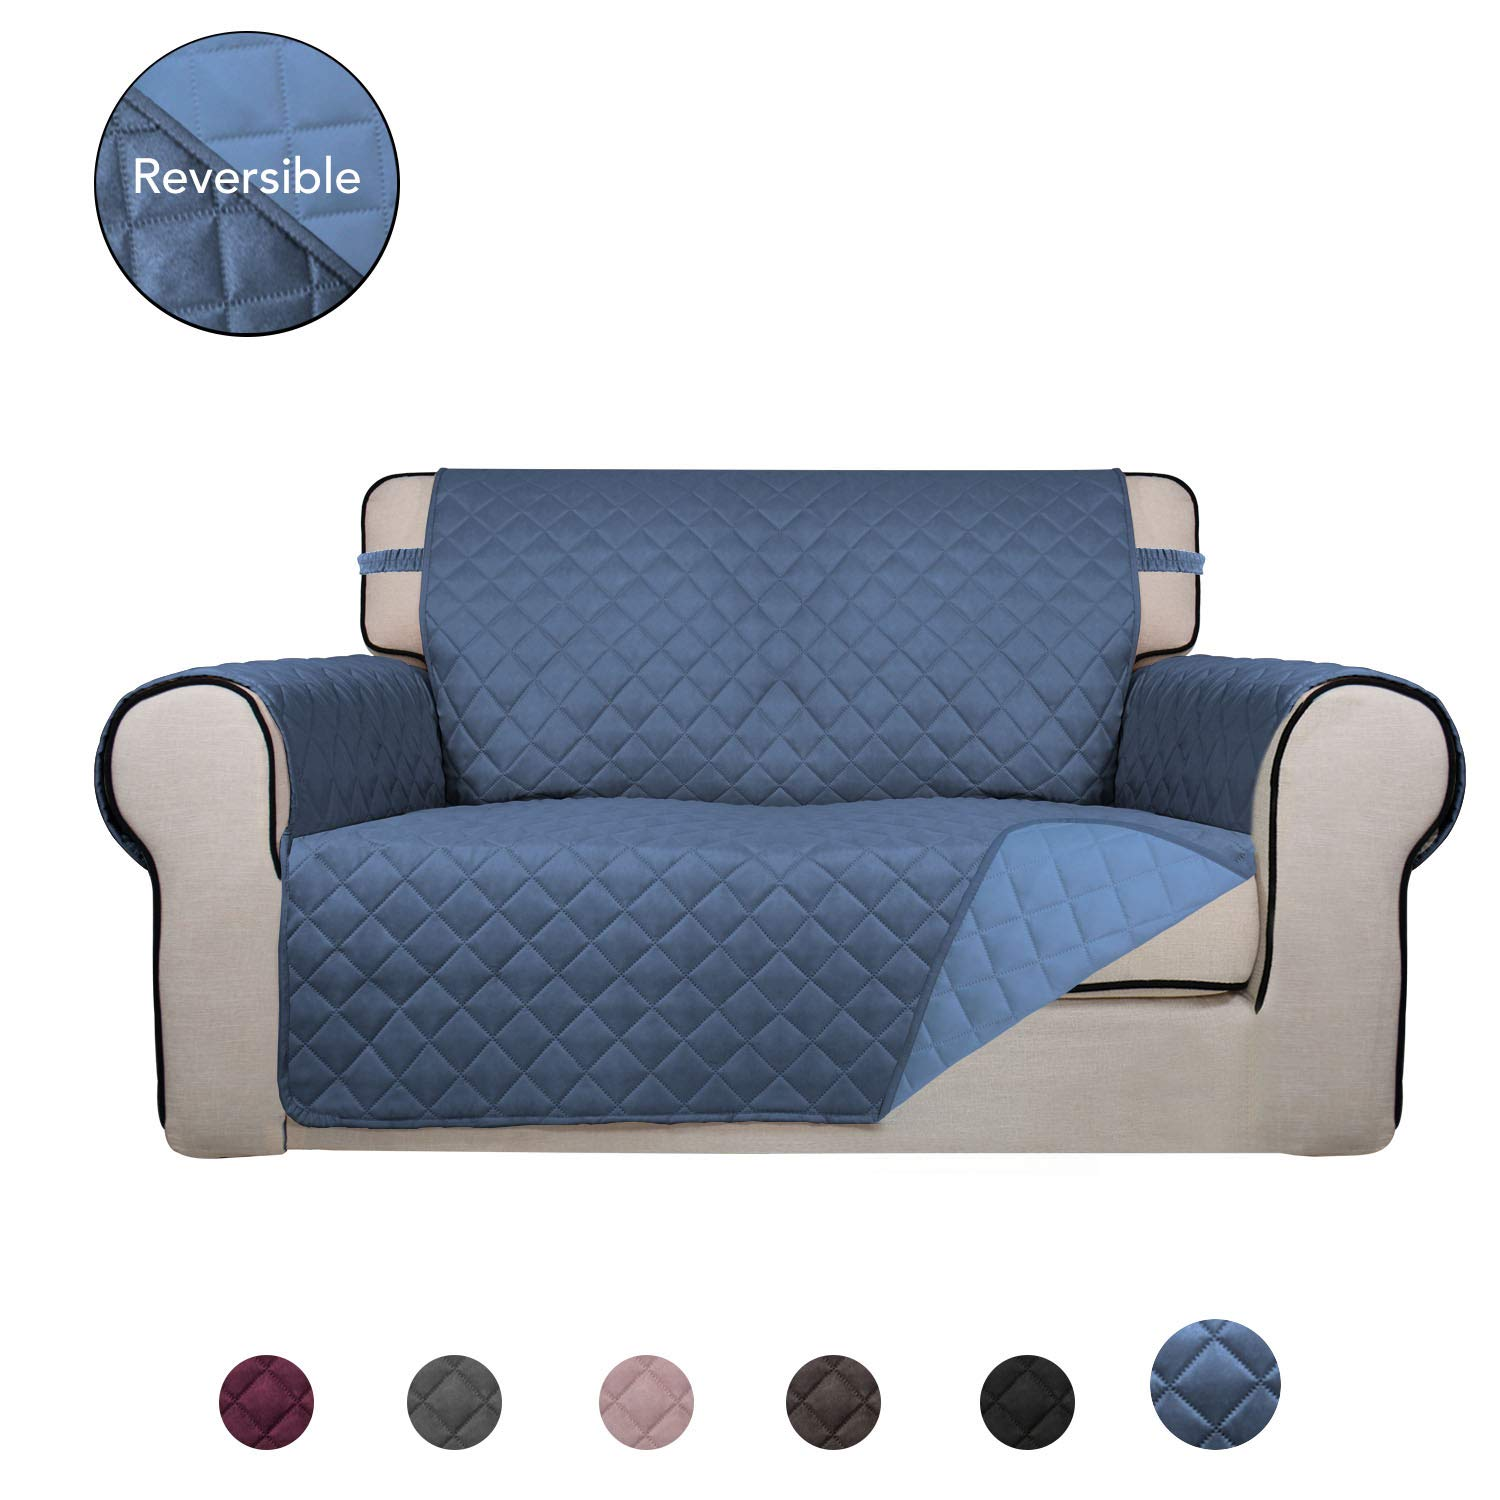 PureFit Reversible Quilted Sofa Cover, Water Resistant Slipcover Furniture Protector, Washable Couch Cover with Anti-Slip Foam and Elastic Straps for Kids, Dogs, Pets (Loveseat, DarkBlue/LightBlue)